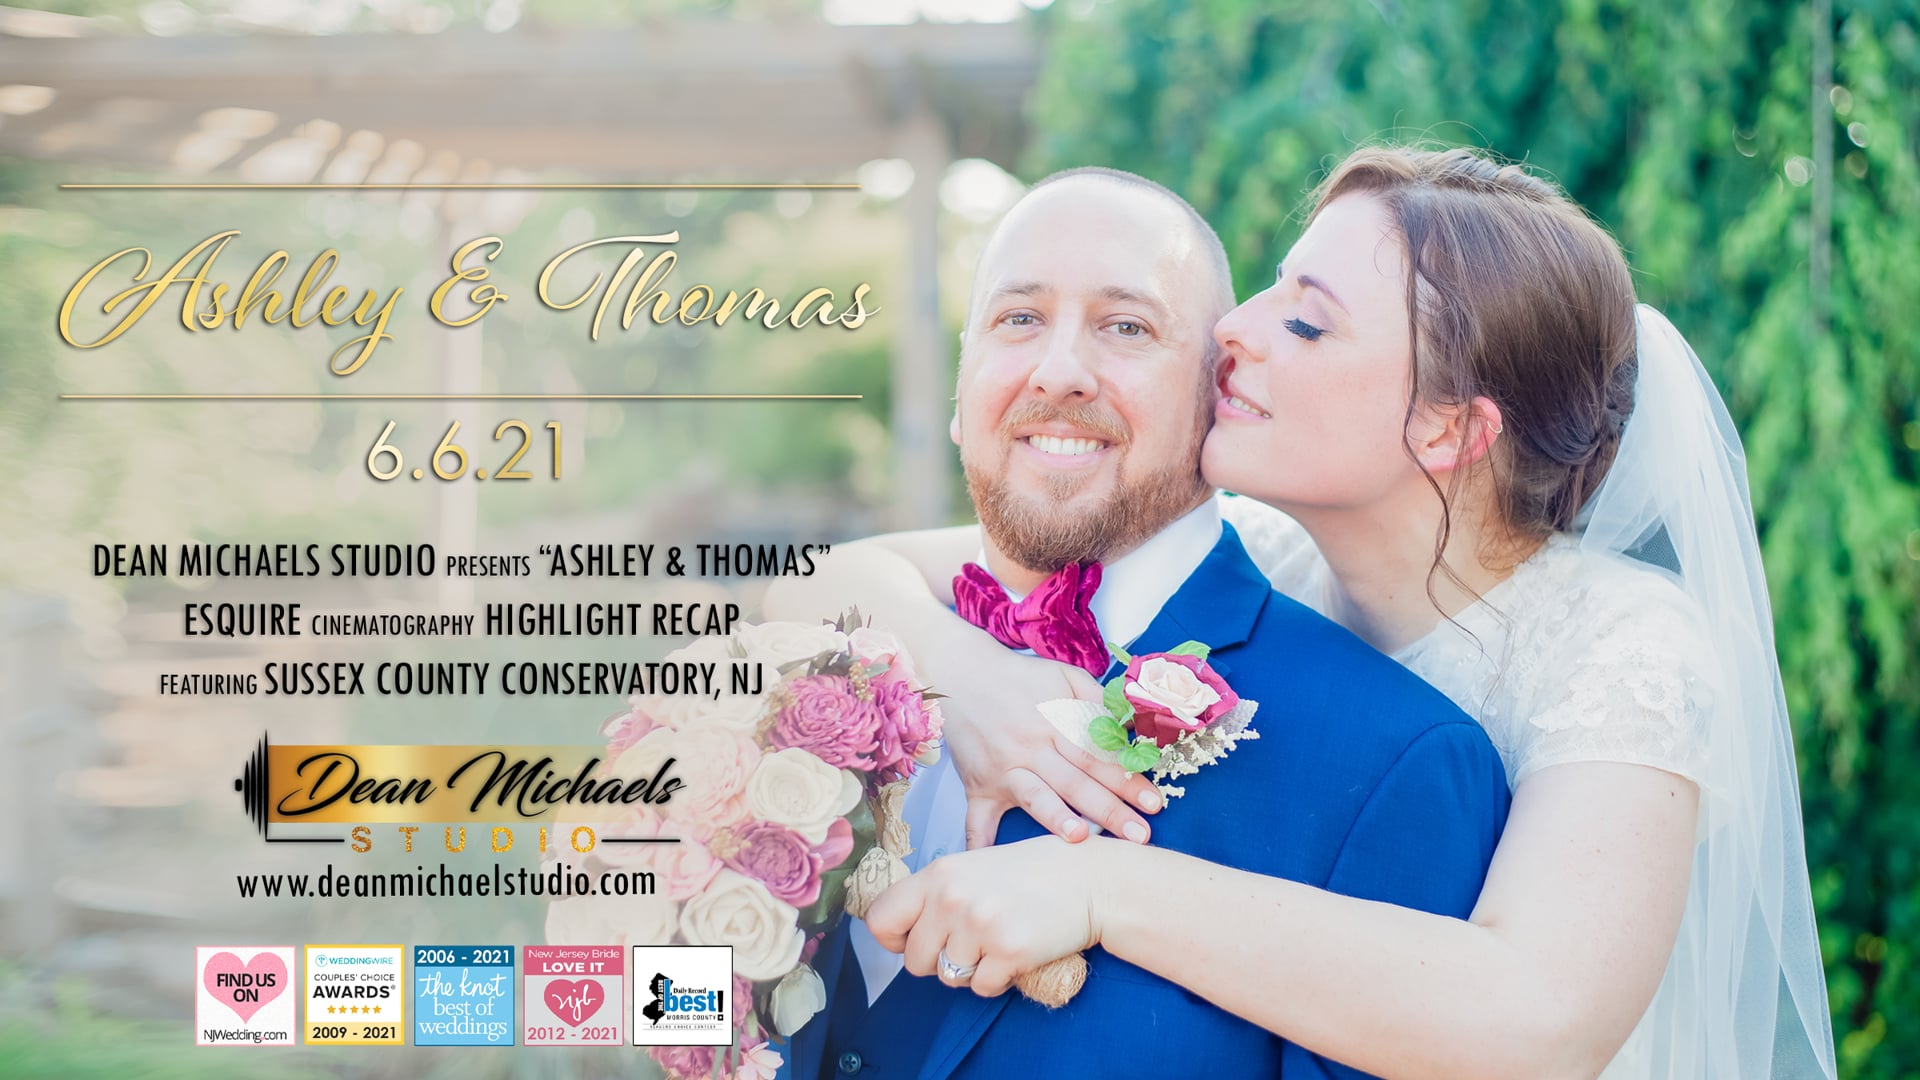 Ashley & Thomas's Wedding Highlight Recap at The Sussex County Conservatory, NJ